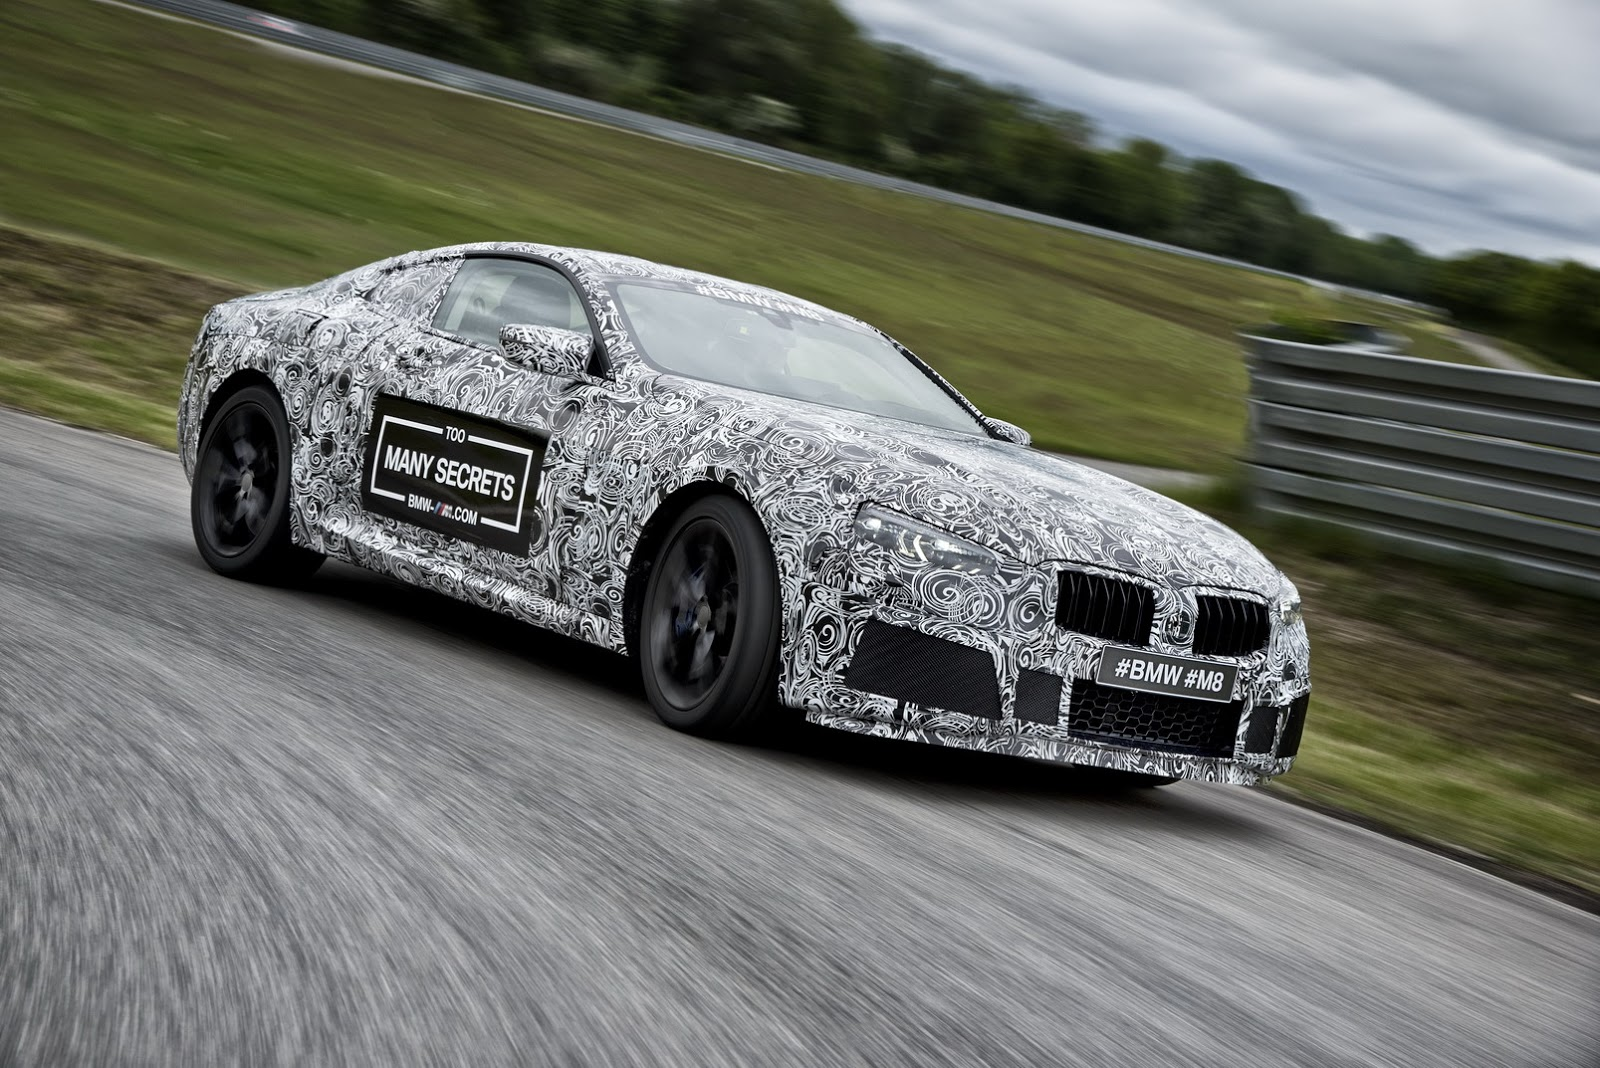 The Bmw M8 Is Real Gets Shown At Nurburgring 24h